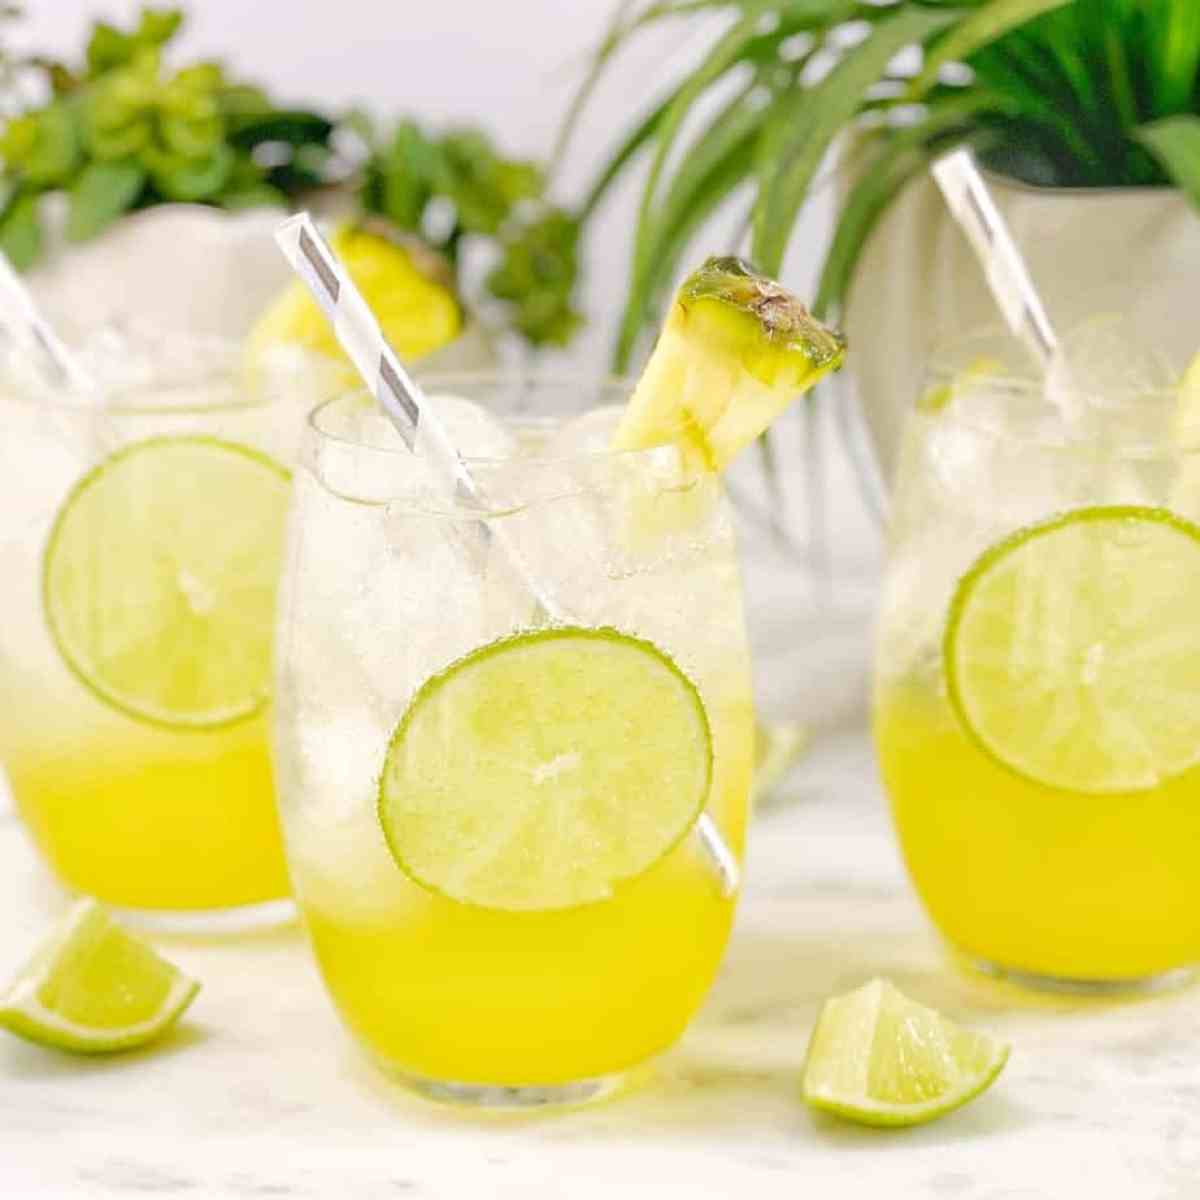 a clear and yellow layered drink with a piece of lime in a clear glass